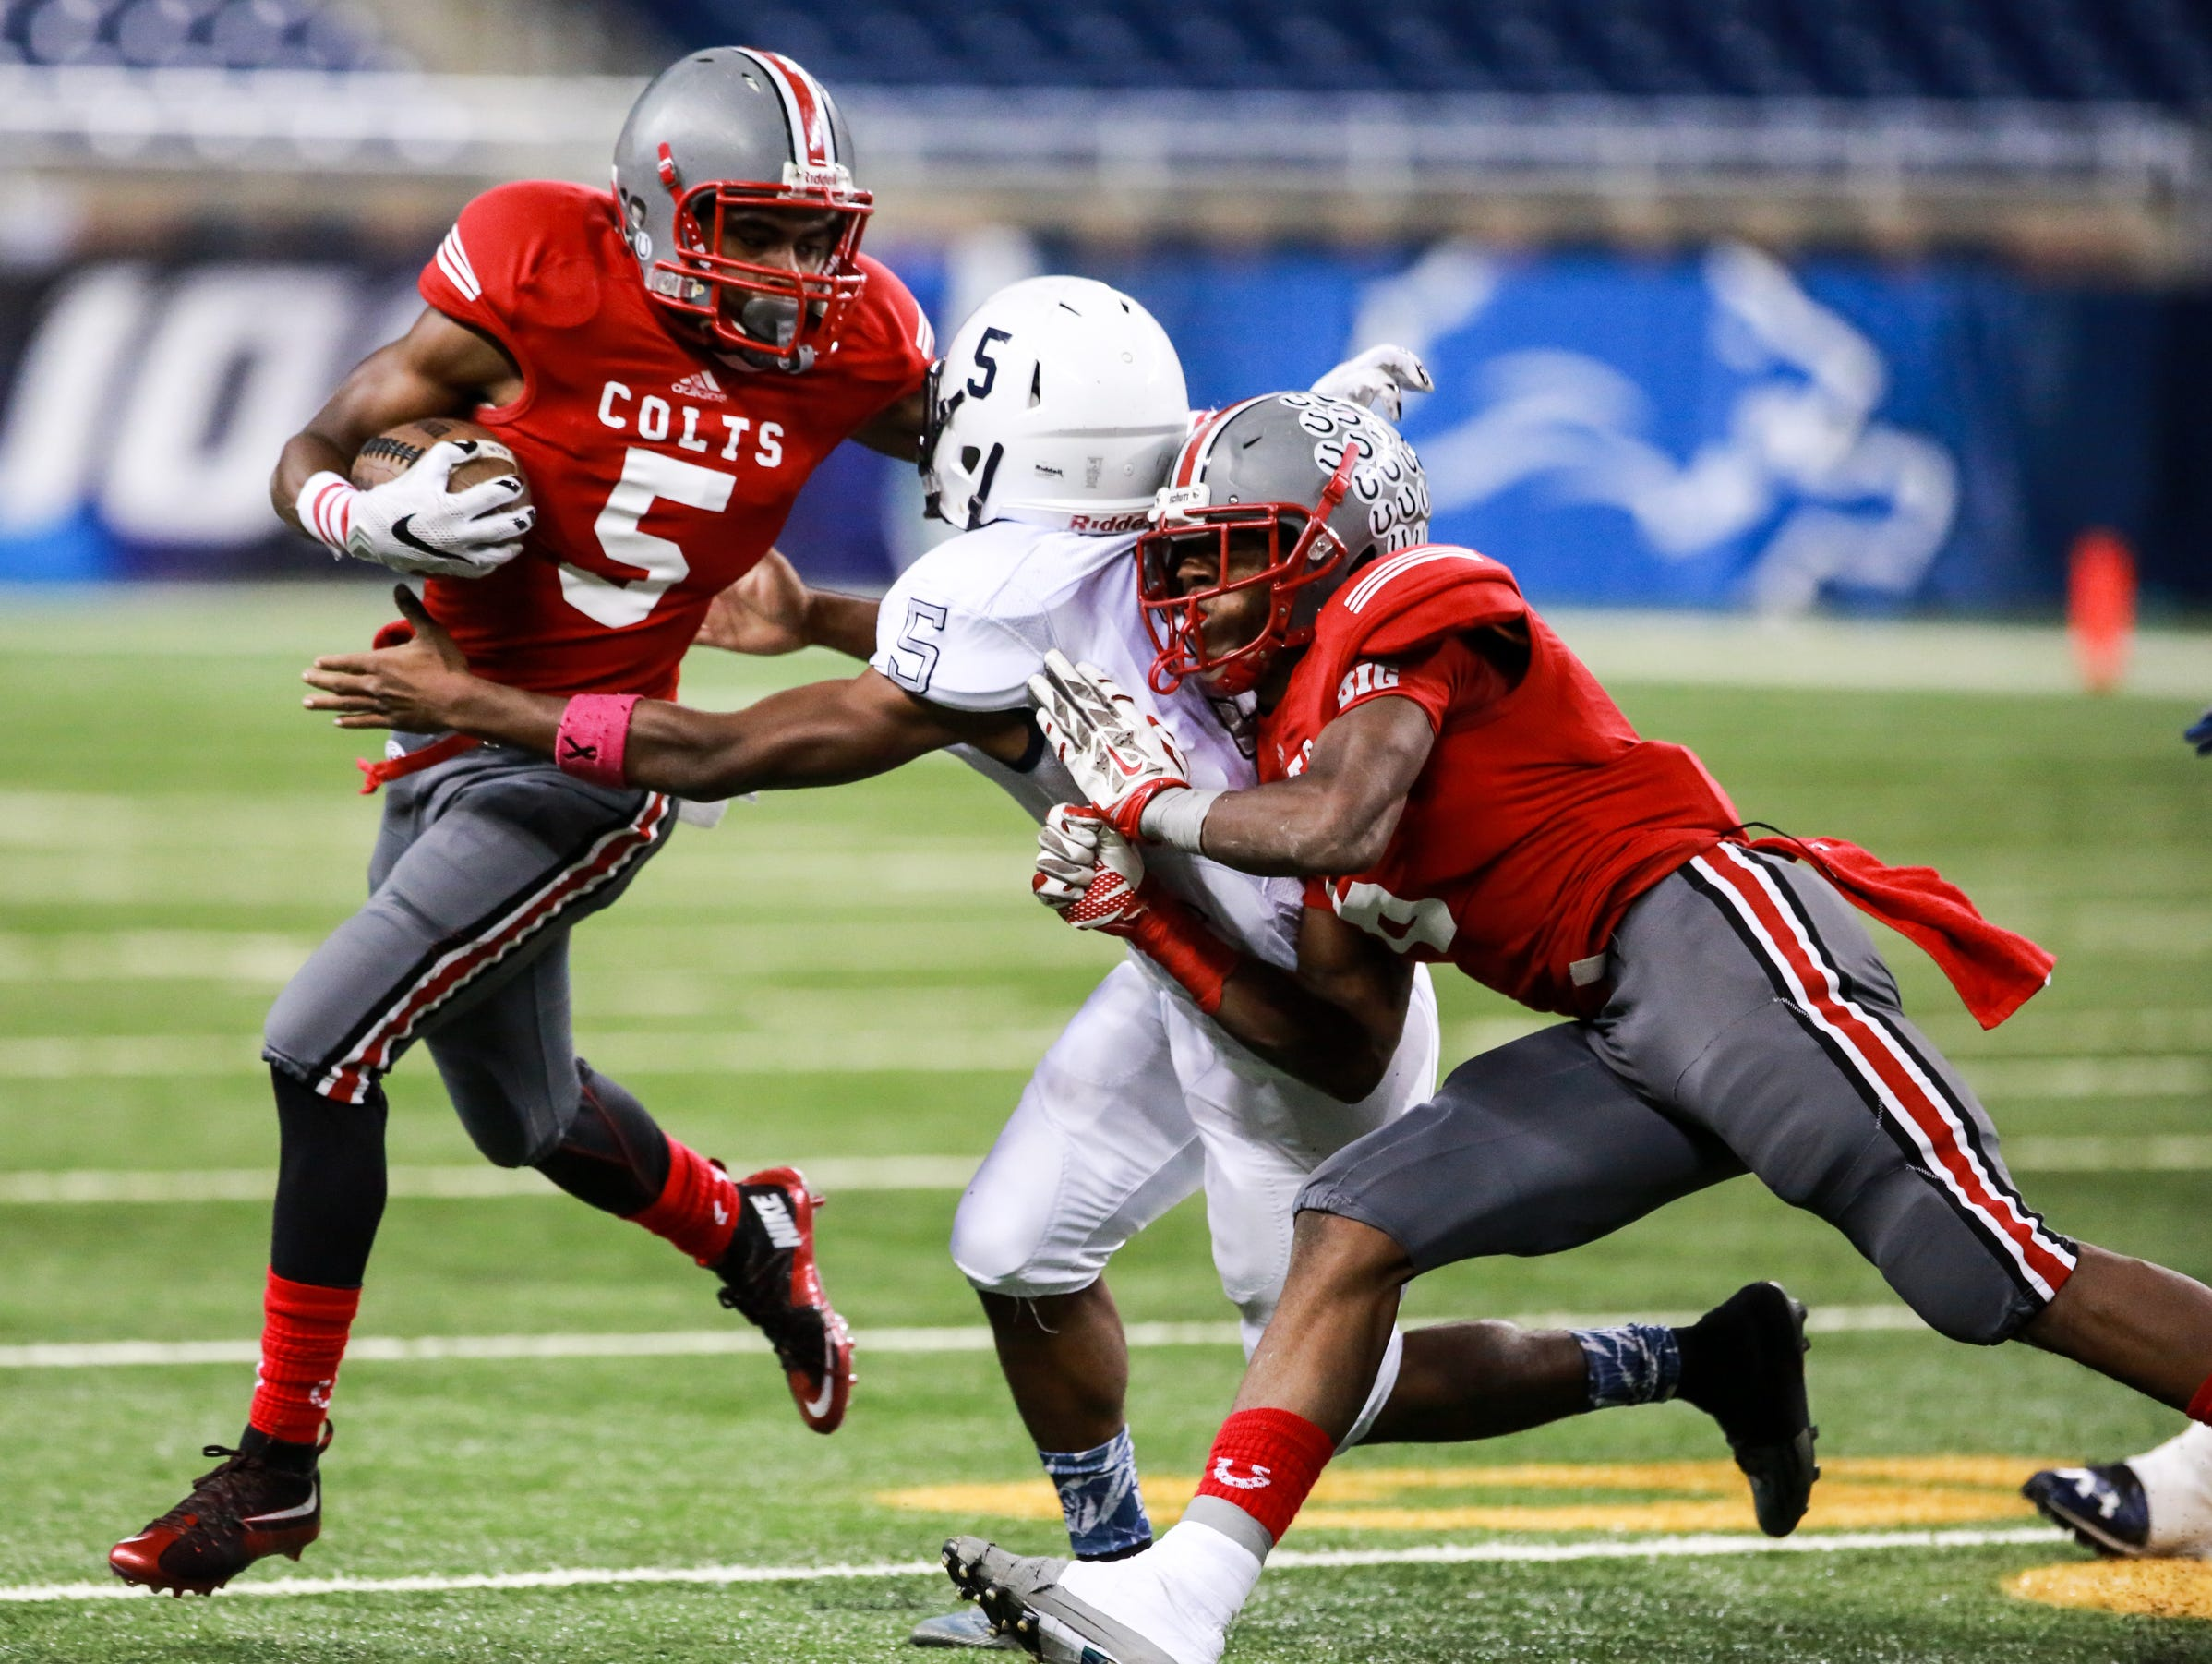 Northwestern Colts' Michael Marion runs for yardage against Central Trailblazers Lamar Perdue in the first quarter of the Detroit Public School League 2015 Football Championship at Ford Field in Detroit on Friday, Oct. 23, 2015.